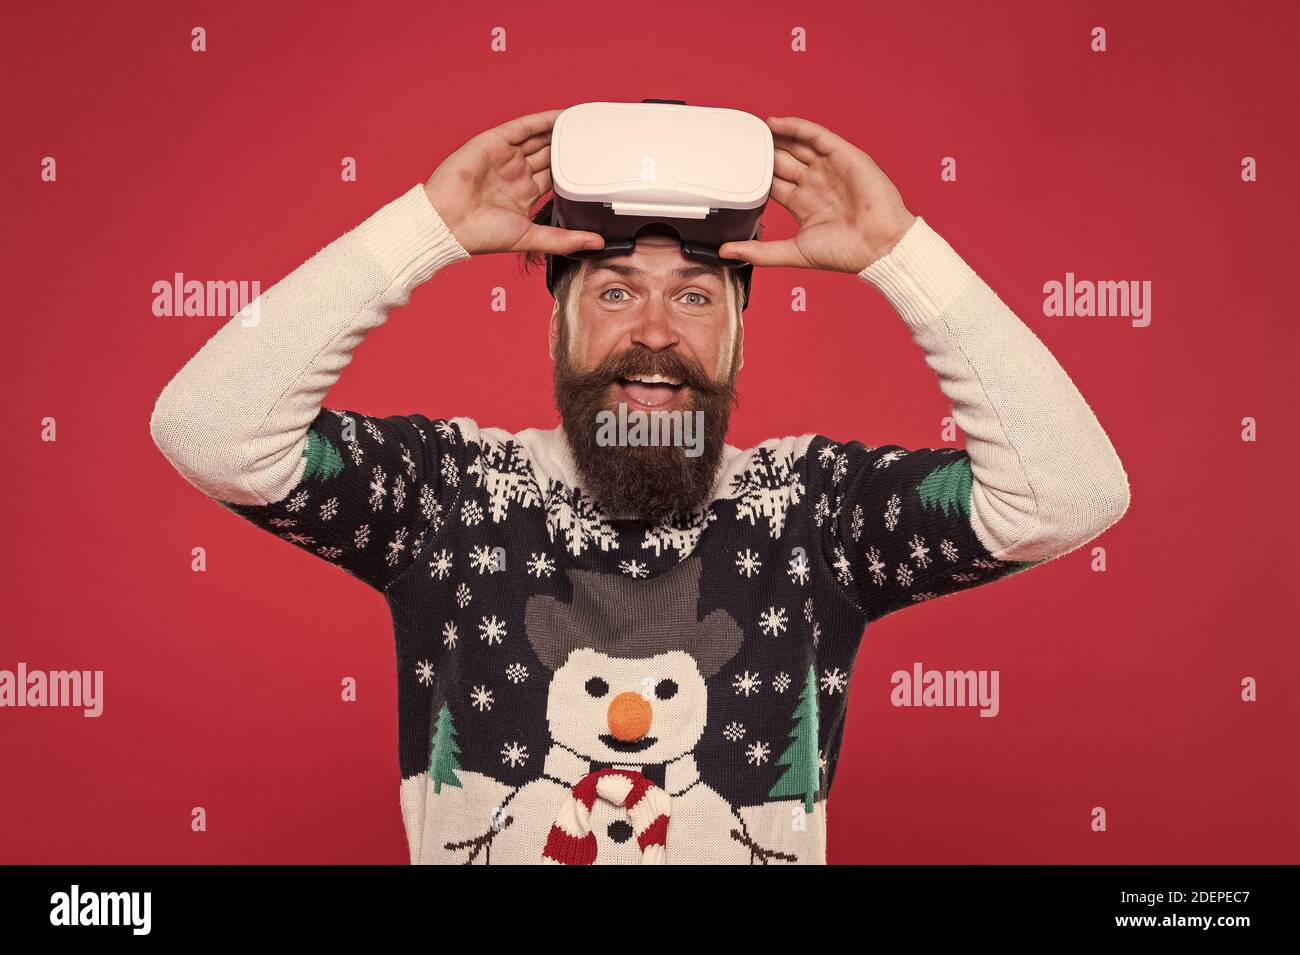 man winter sweater play game. indoor vs outdoor activity. Virtual reality. man wearing virtual reality goggles. xmas party. happy bearded hipster in vr glasses. interacting with a virtual environment Stock Photo